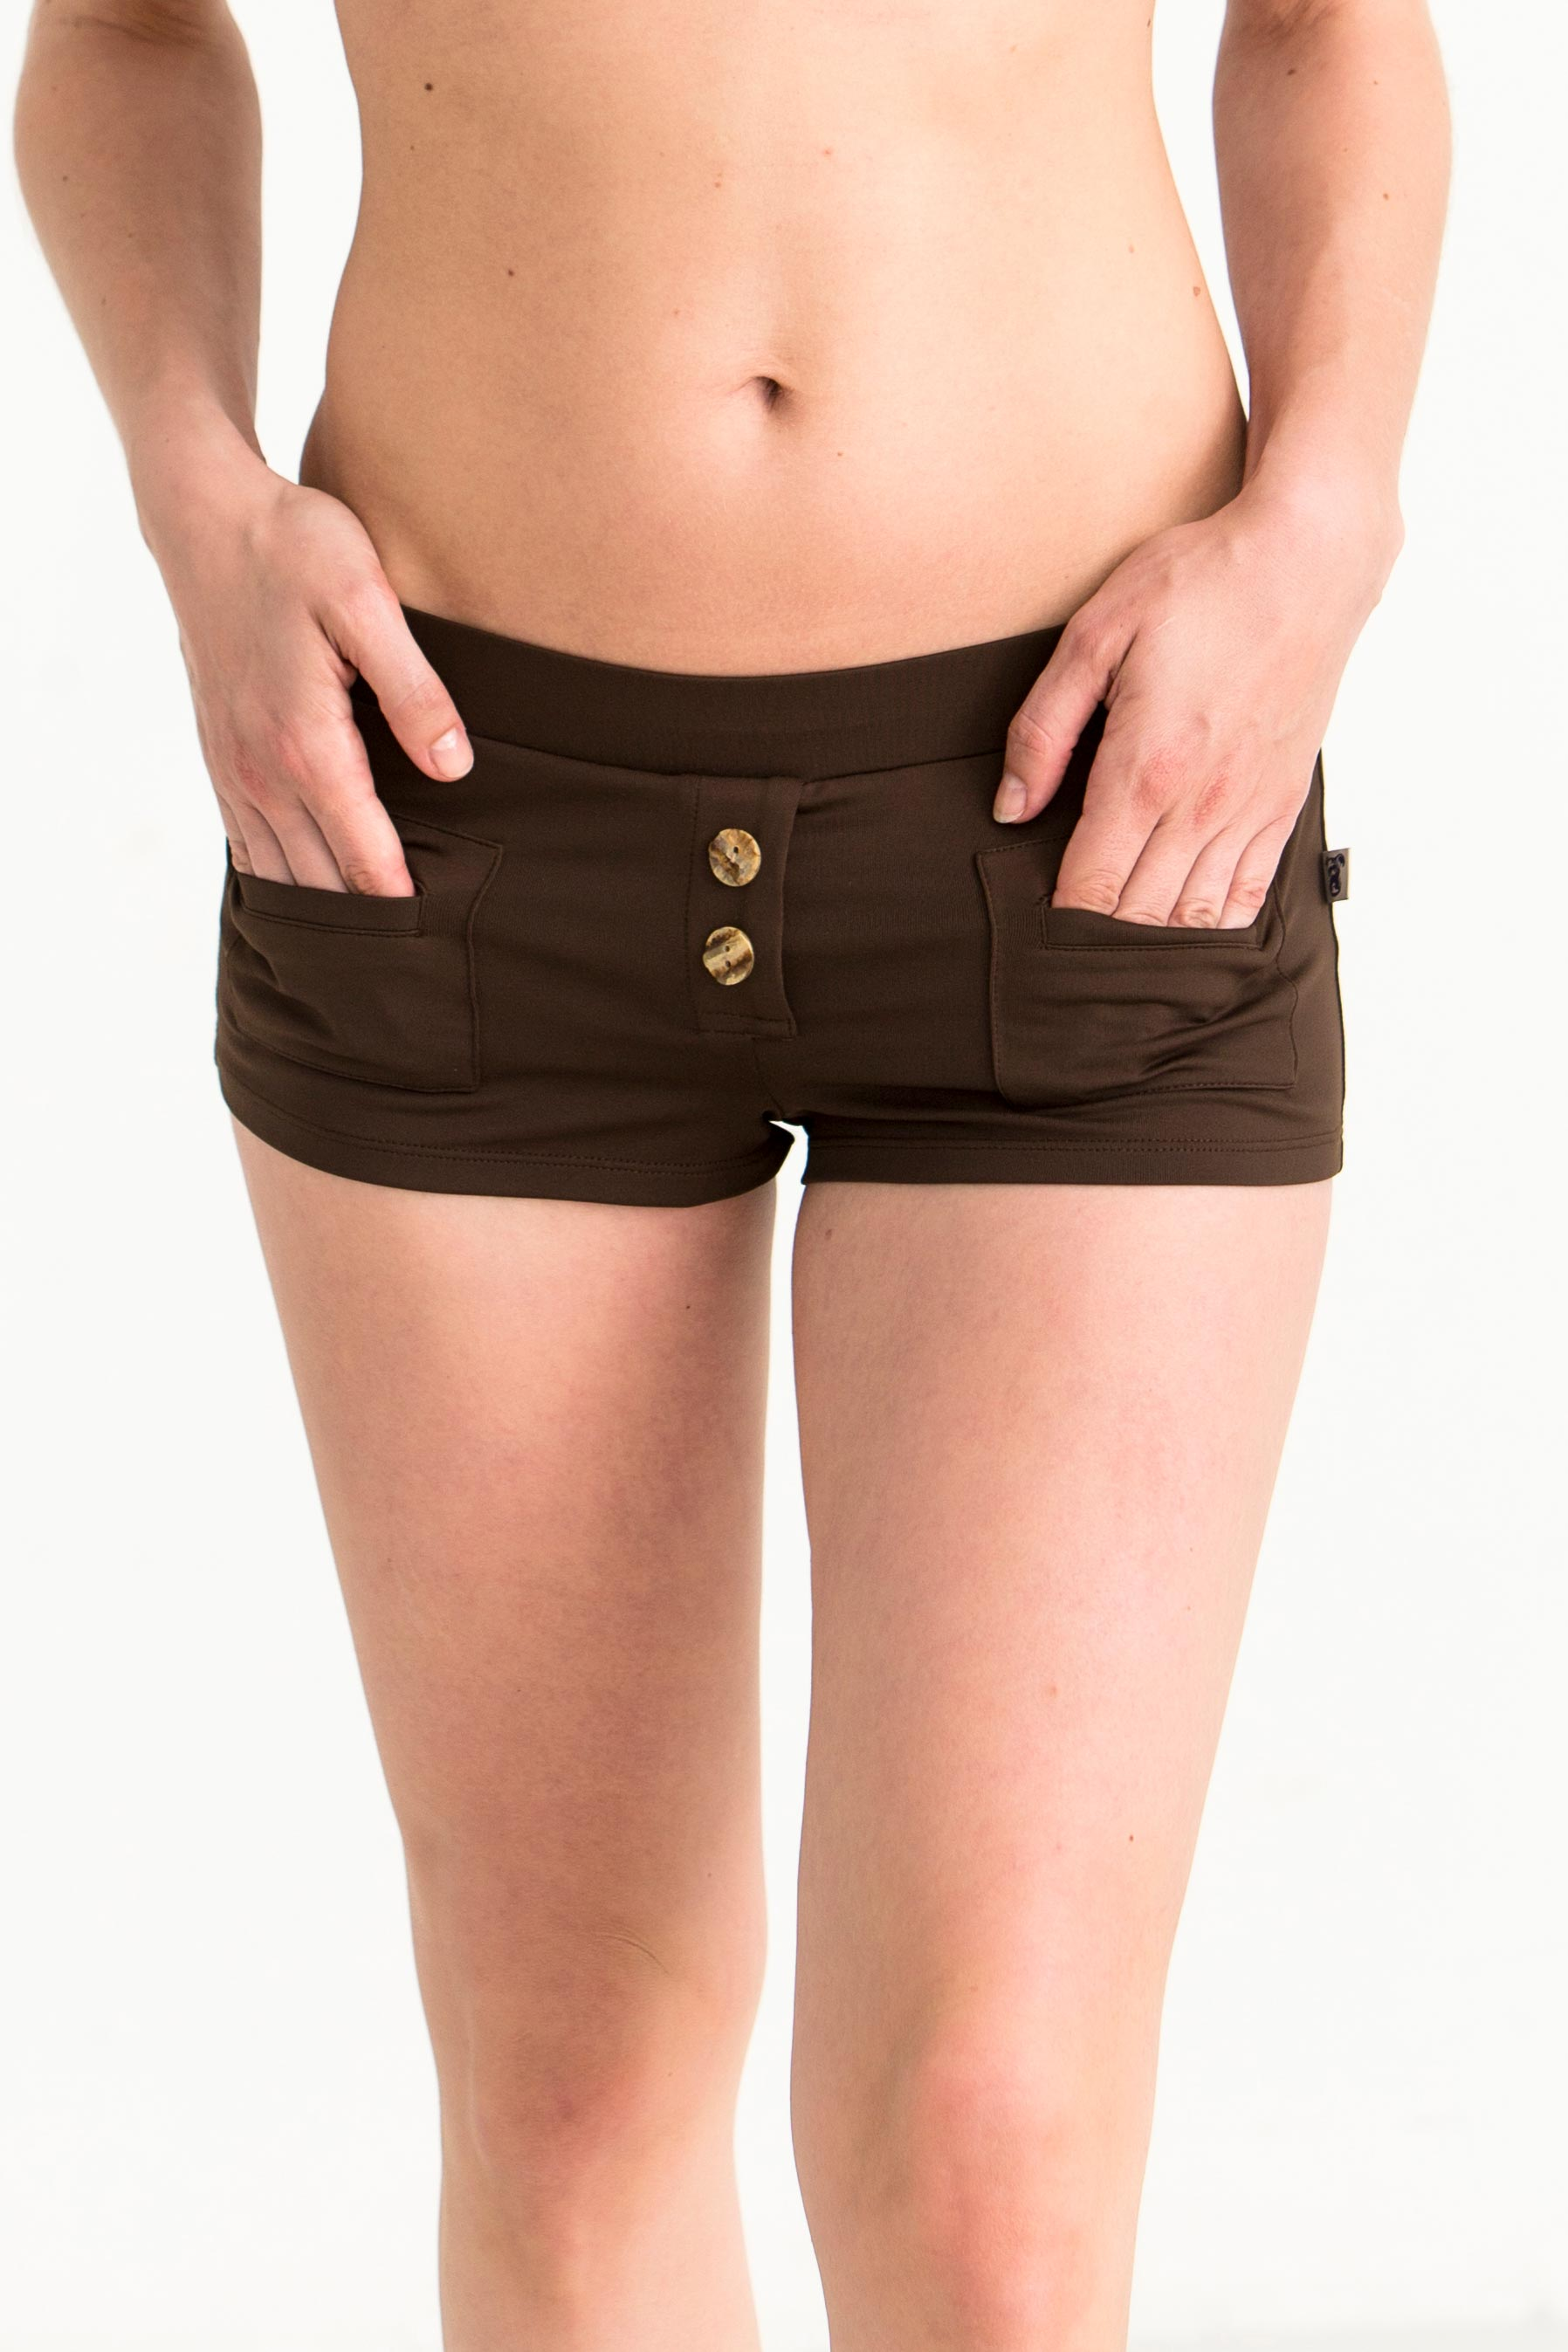 bib-bottom-short-pockets-daniela-choco3